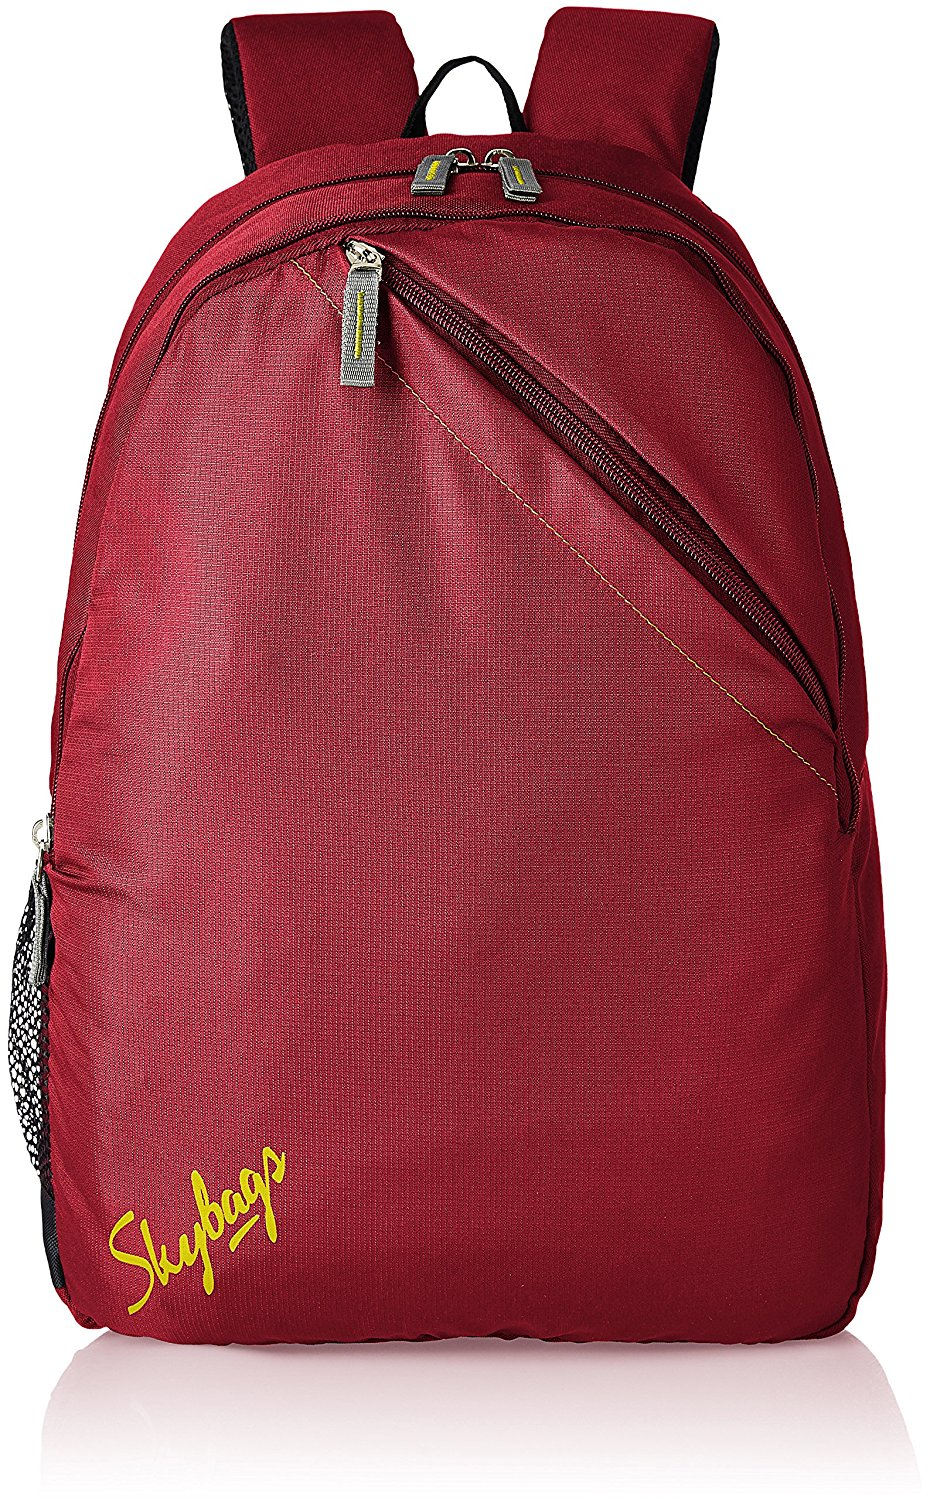 Skybags Brat 21 Ltrs Red Casual Backpack